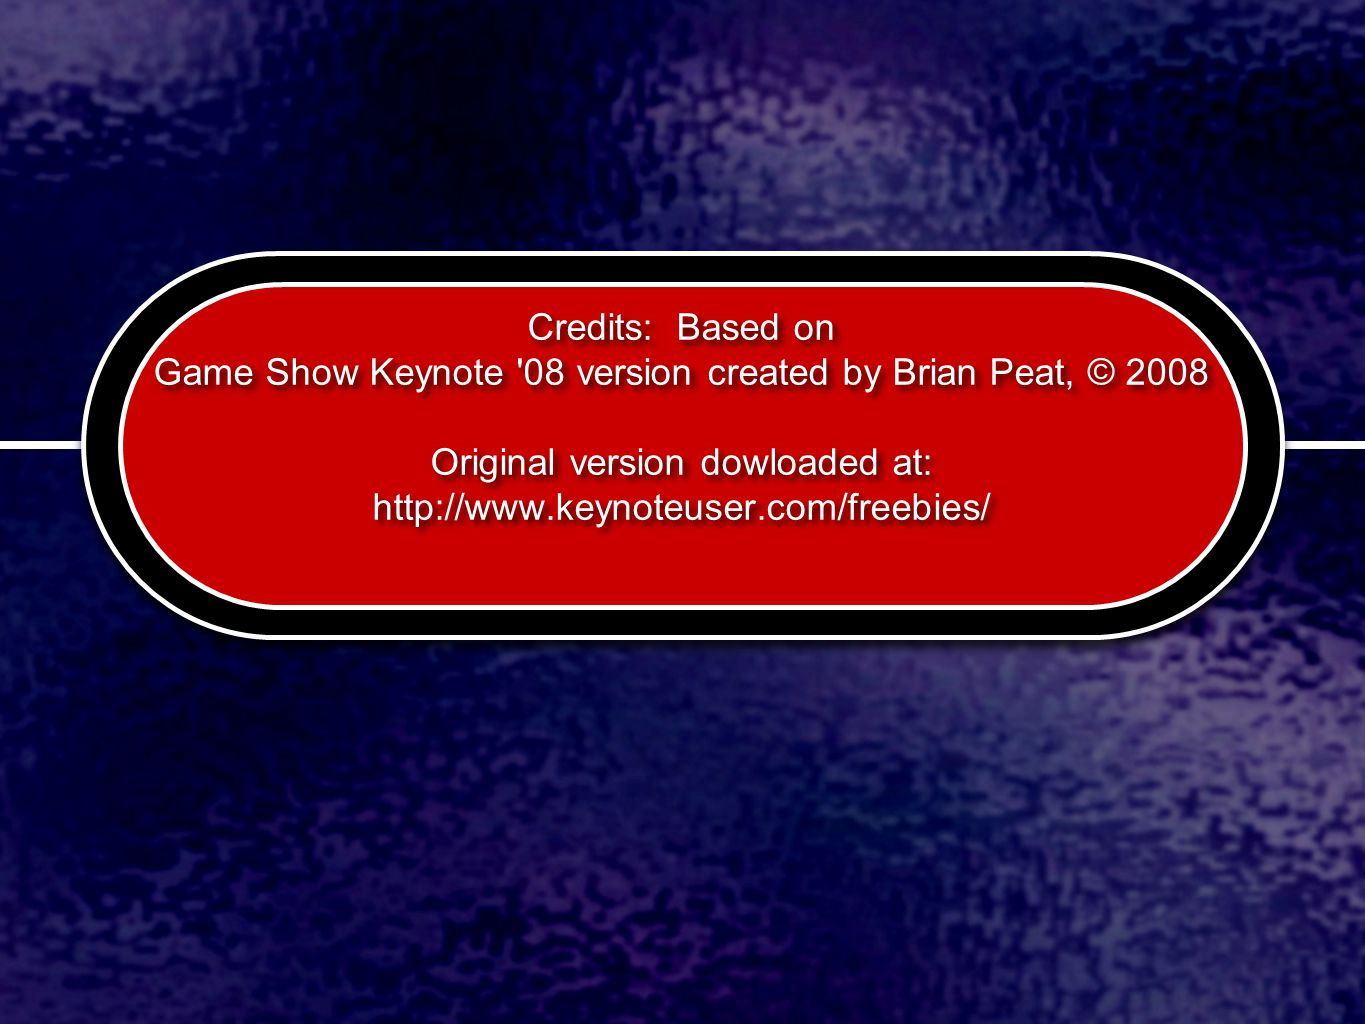 Credits: Based on Game Show Keynote 08 version created by Brian Peat, © 2008 Original version dowloaded at: http://www.keynoteuser.com/freebies/